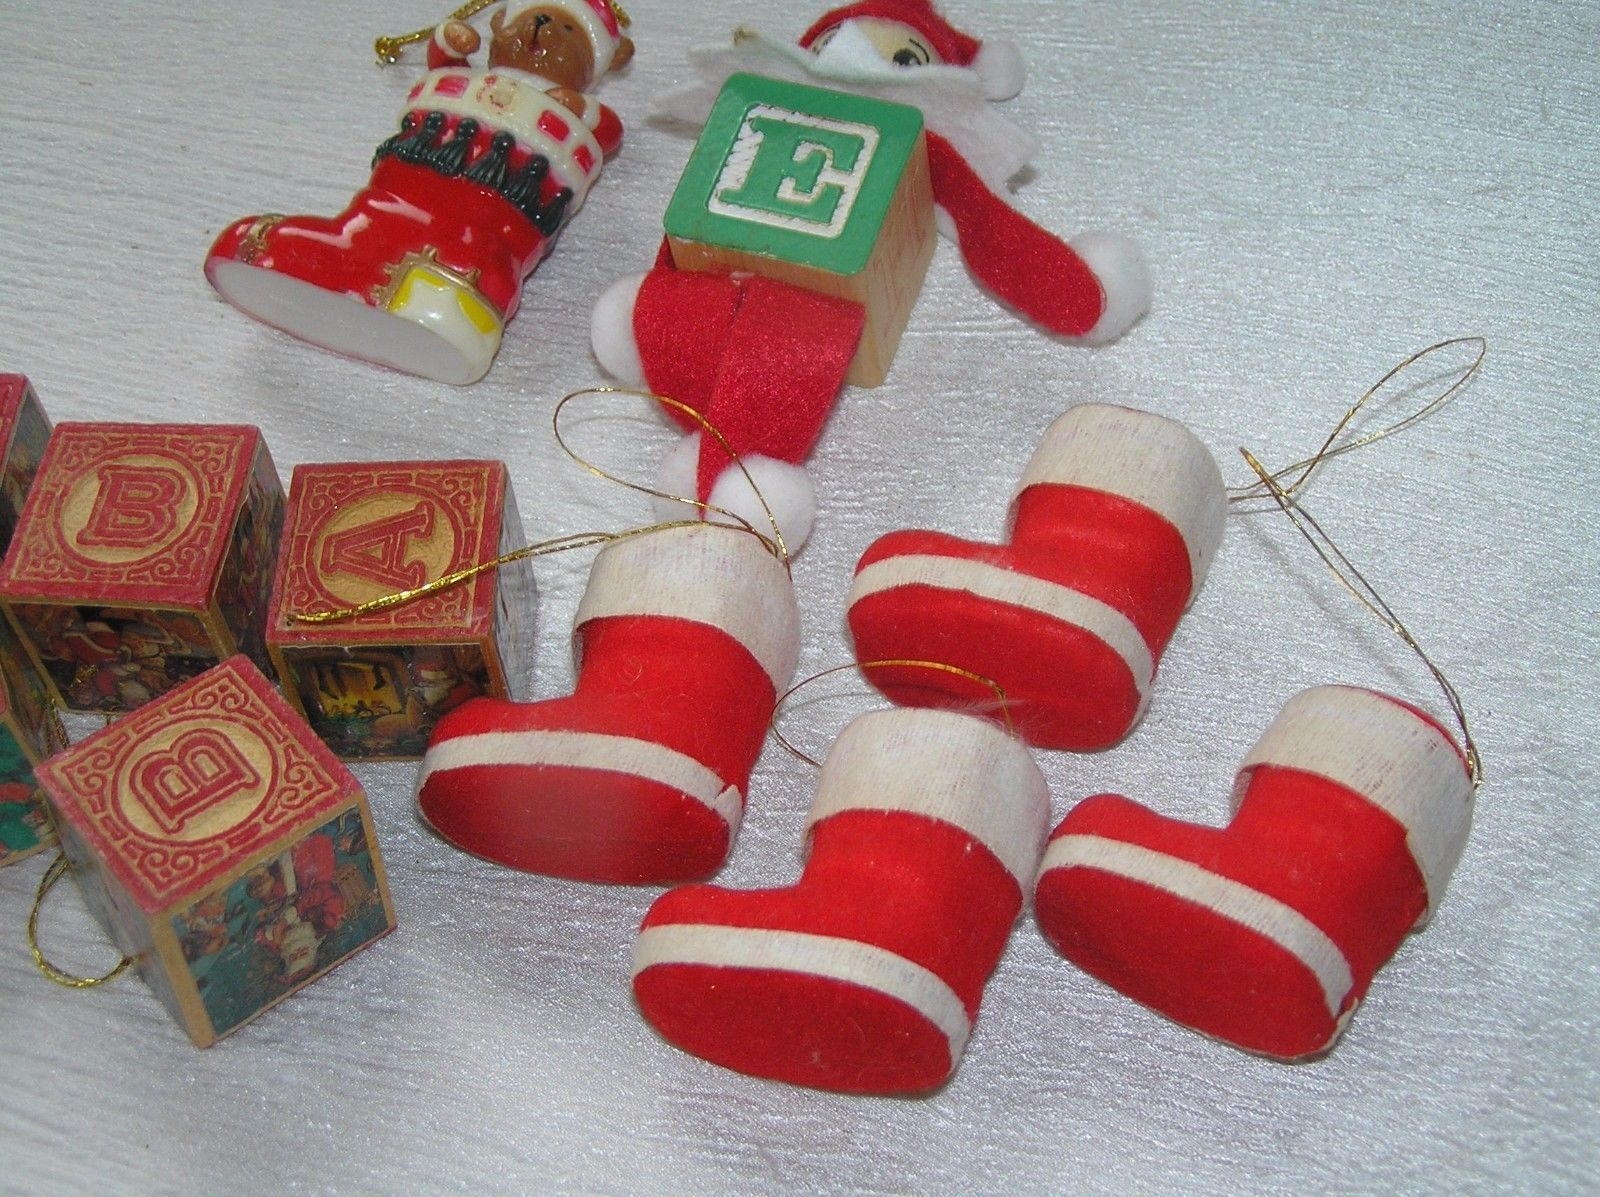 Lot of 11 Faux Wood Building Blocks Folk Art Elf Flocked Christmas Stocking  image 4